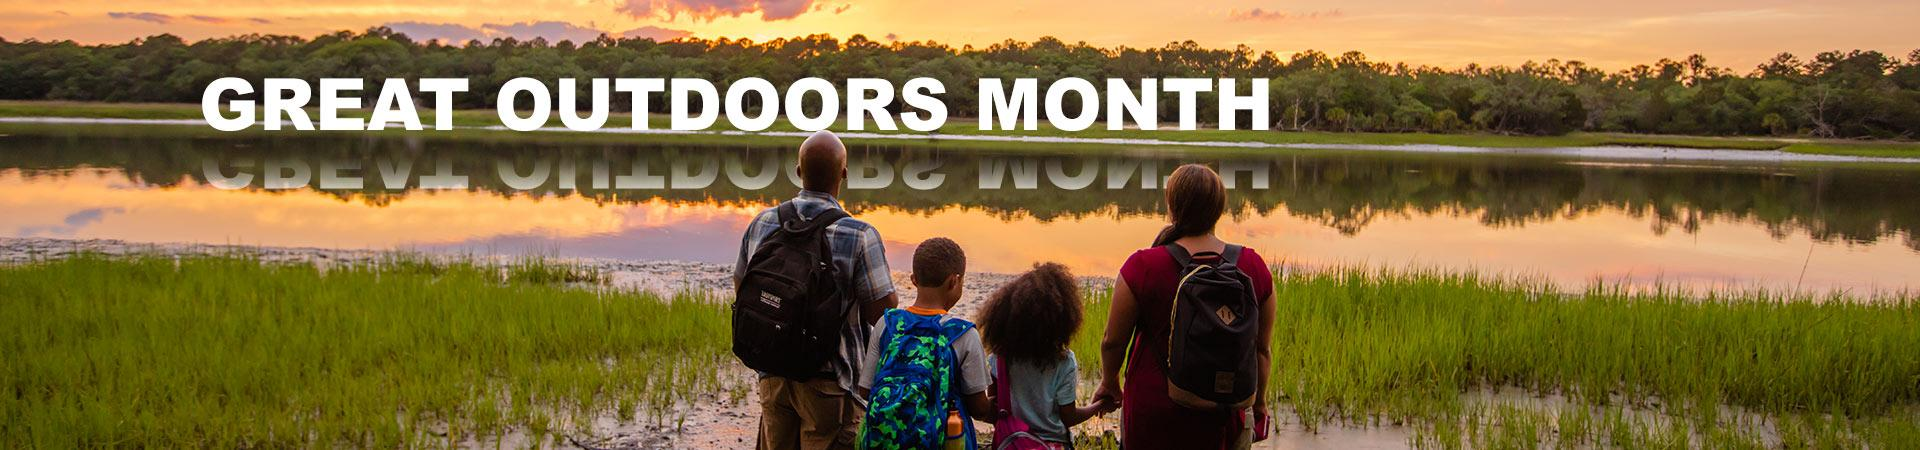 Great Outdoors Month Activities